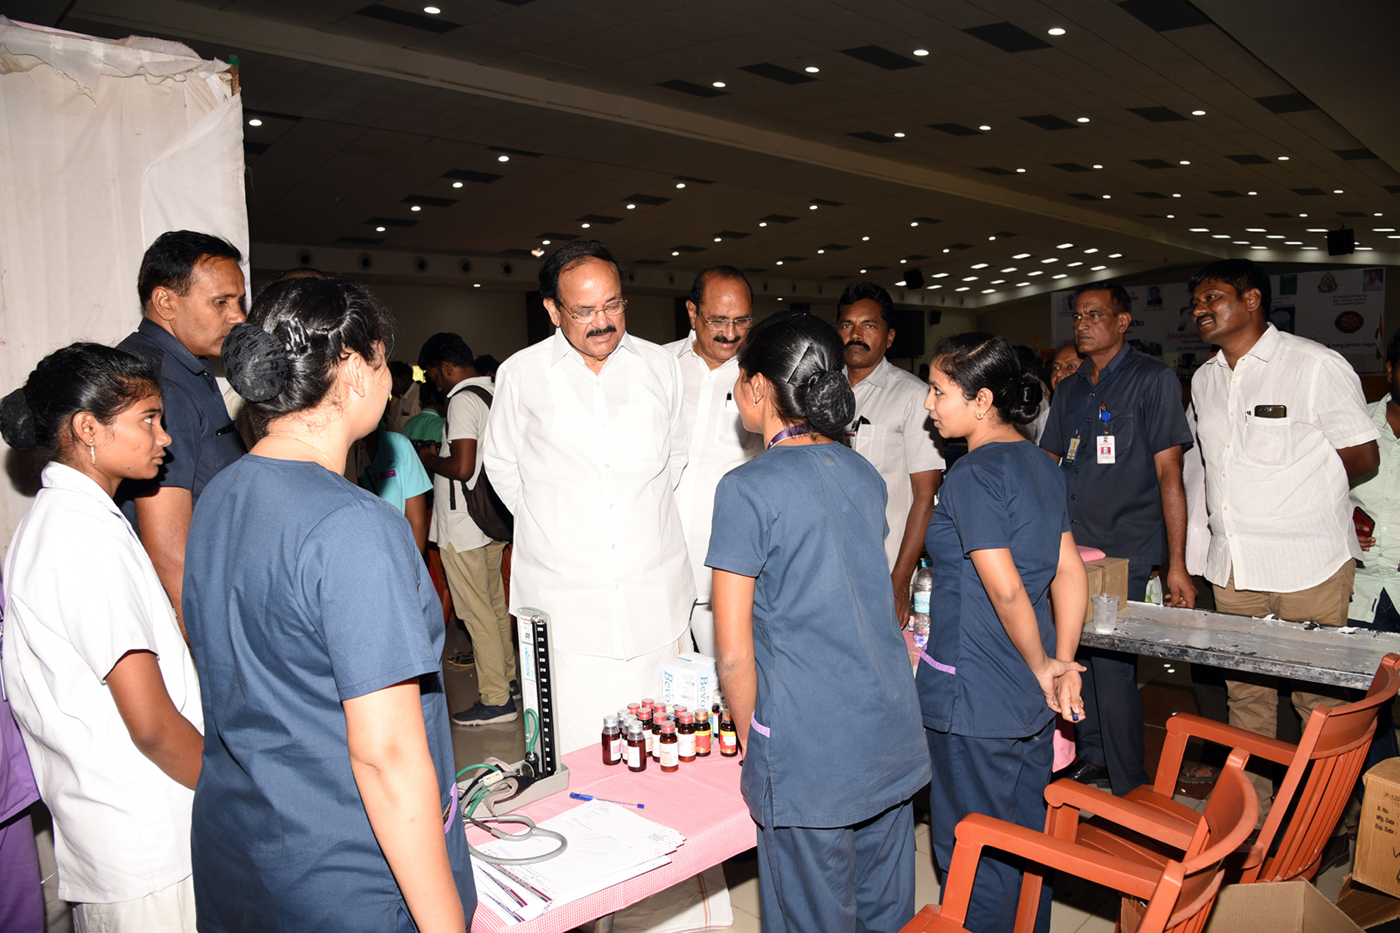 The Vice President, Shri M. Venkaiah Naidu going around the Medical Camp organised by Aayush Hospitals, Rainbow Hospitals and Sankara Netralaya Eye Hospitals, at the Swarna Bharat Trust, in Vijayawada, Andhra Pradesh on May 20, 2019.